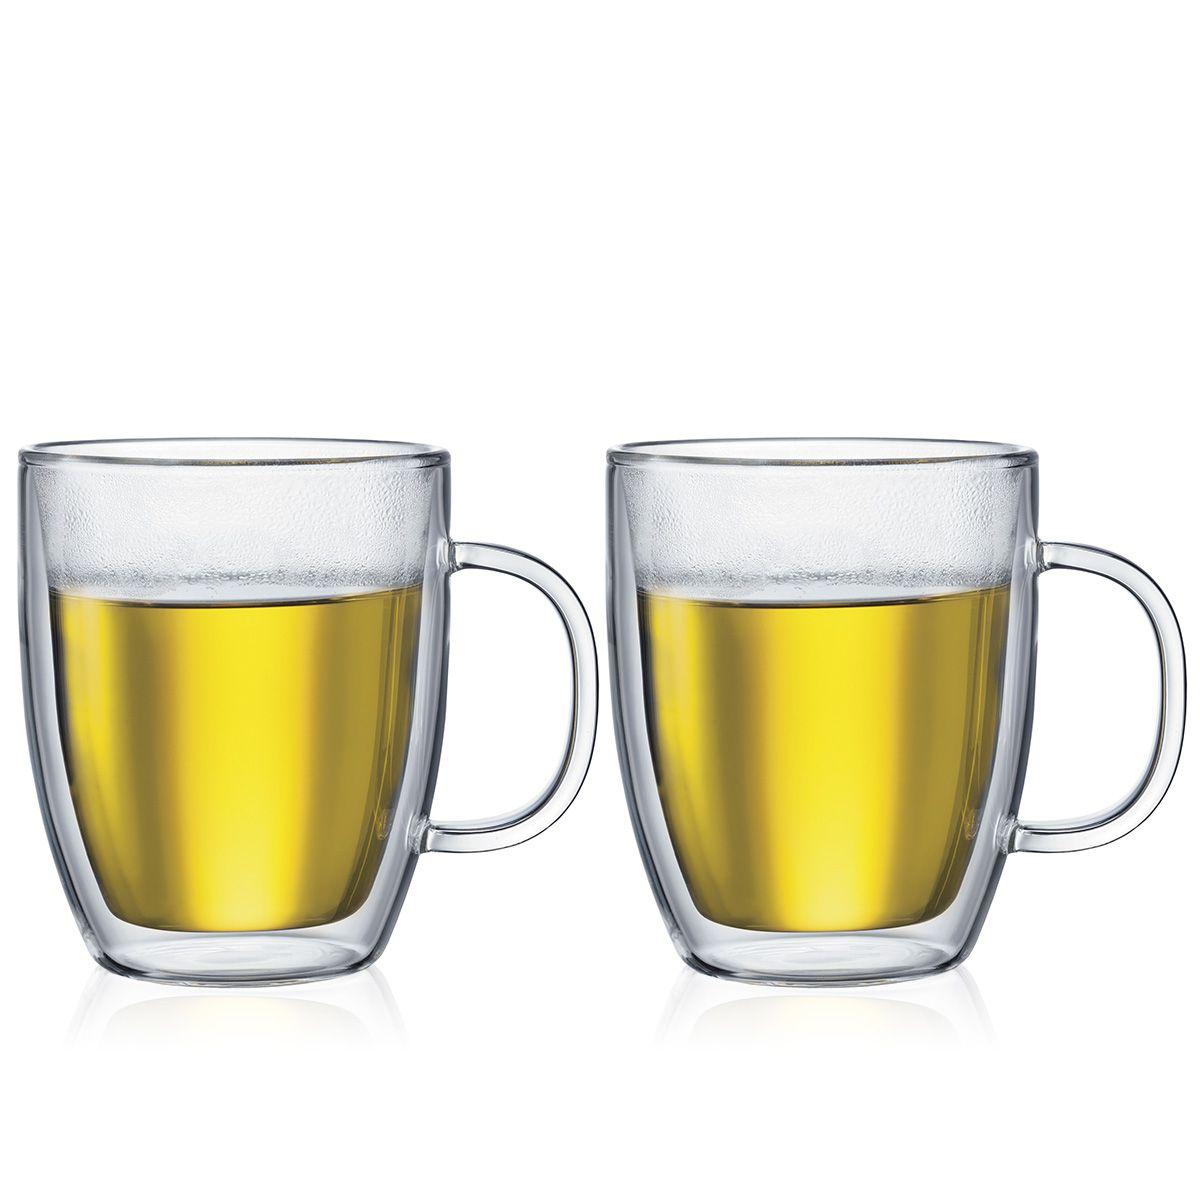 Double Wall Glass Mug BISTRO - Bodum